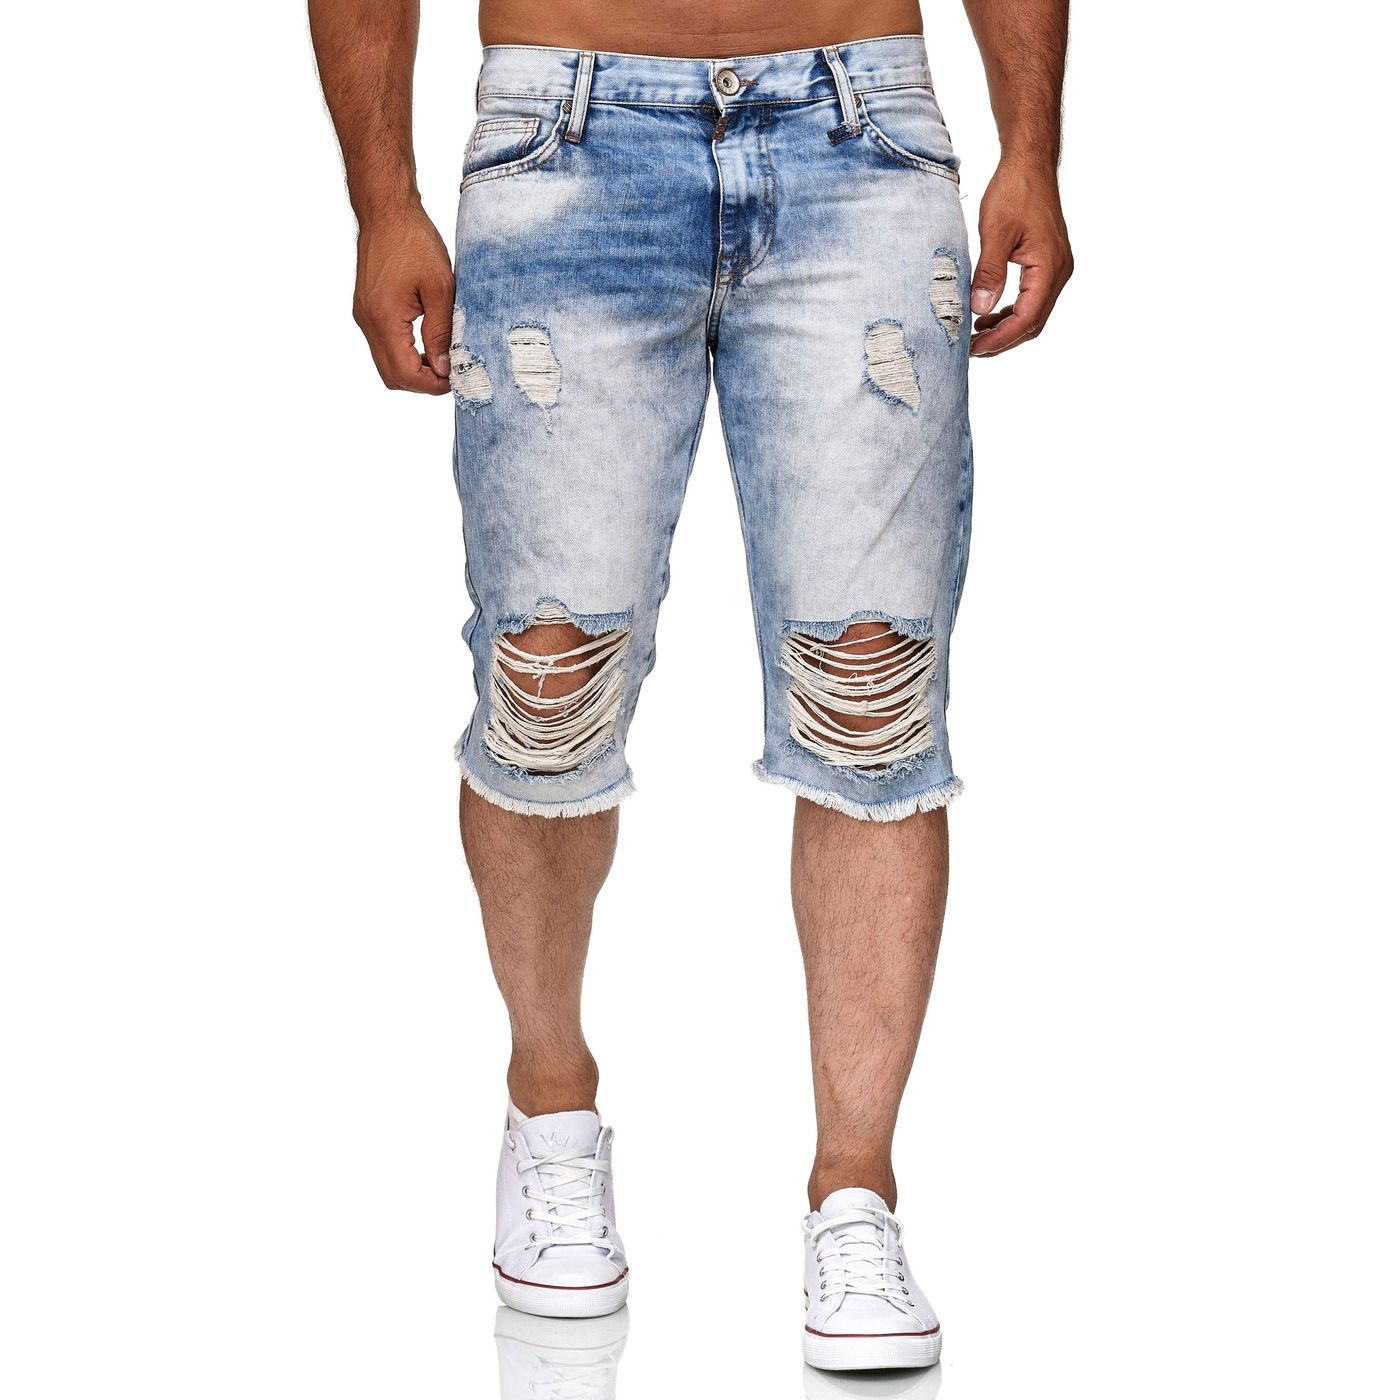 red bridge herren jeans short kurze hose 3 4 destroyed. Black Bedroom Furniture Sets. Home Design Ideas